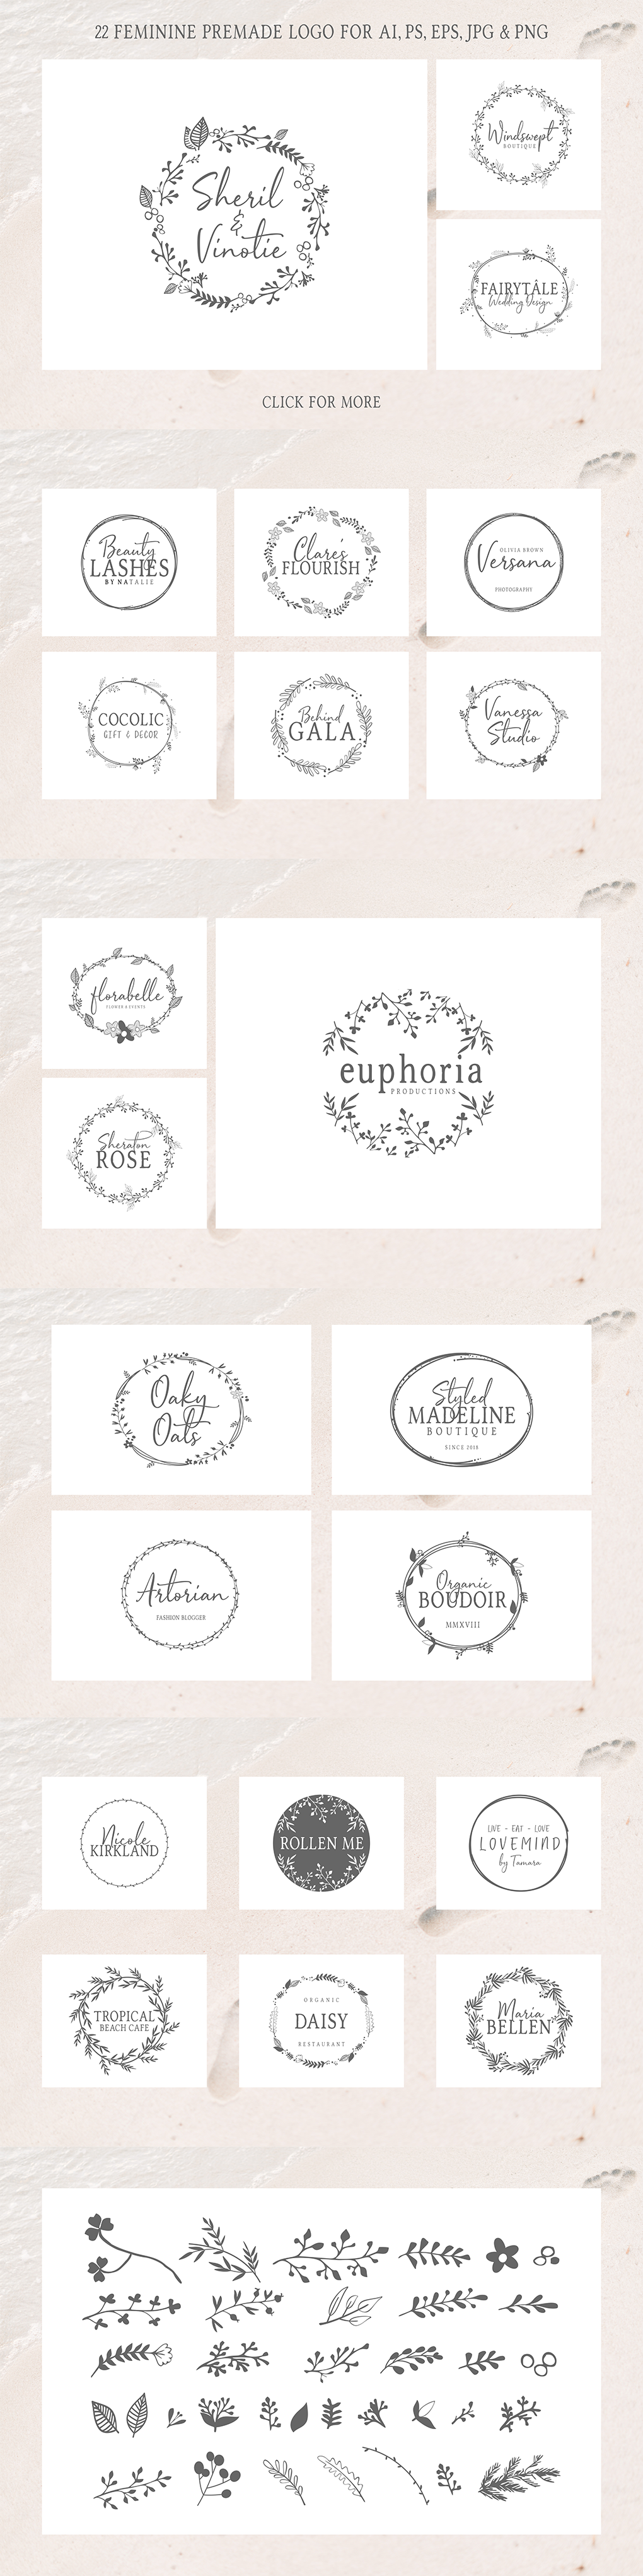 Sophistica - 10+ Fonts & Extras example image 3